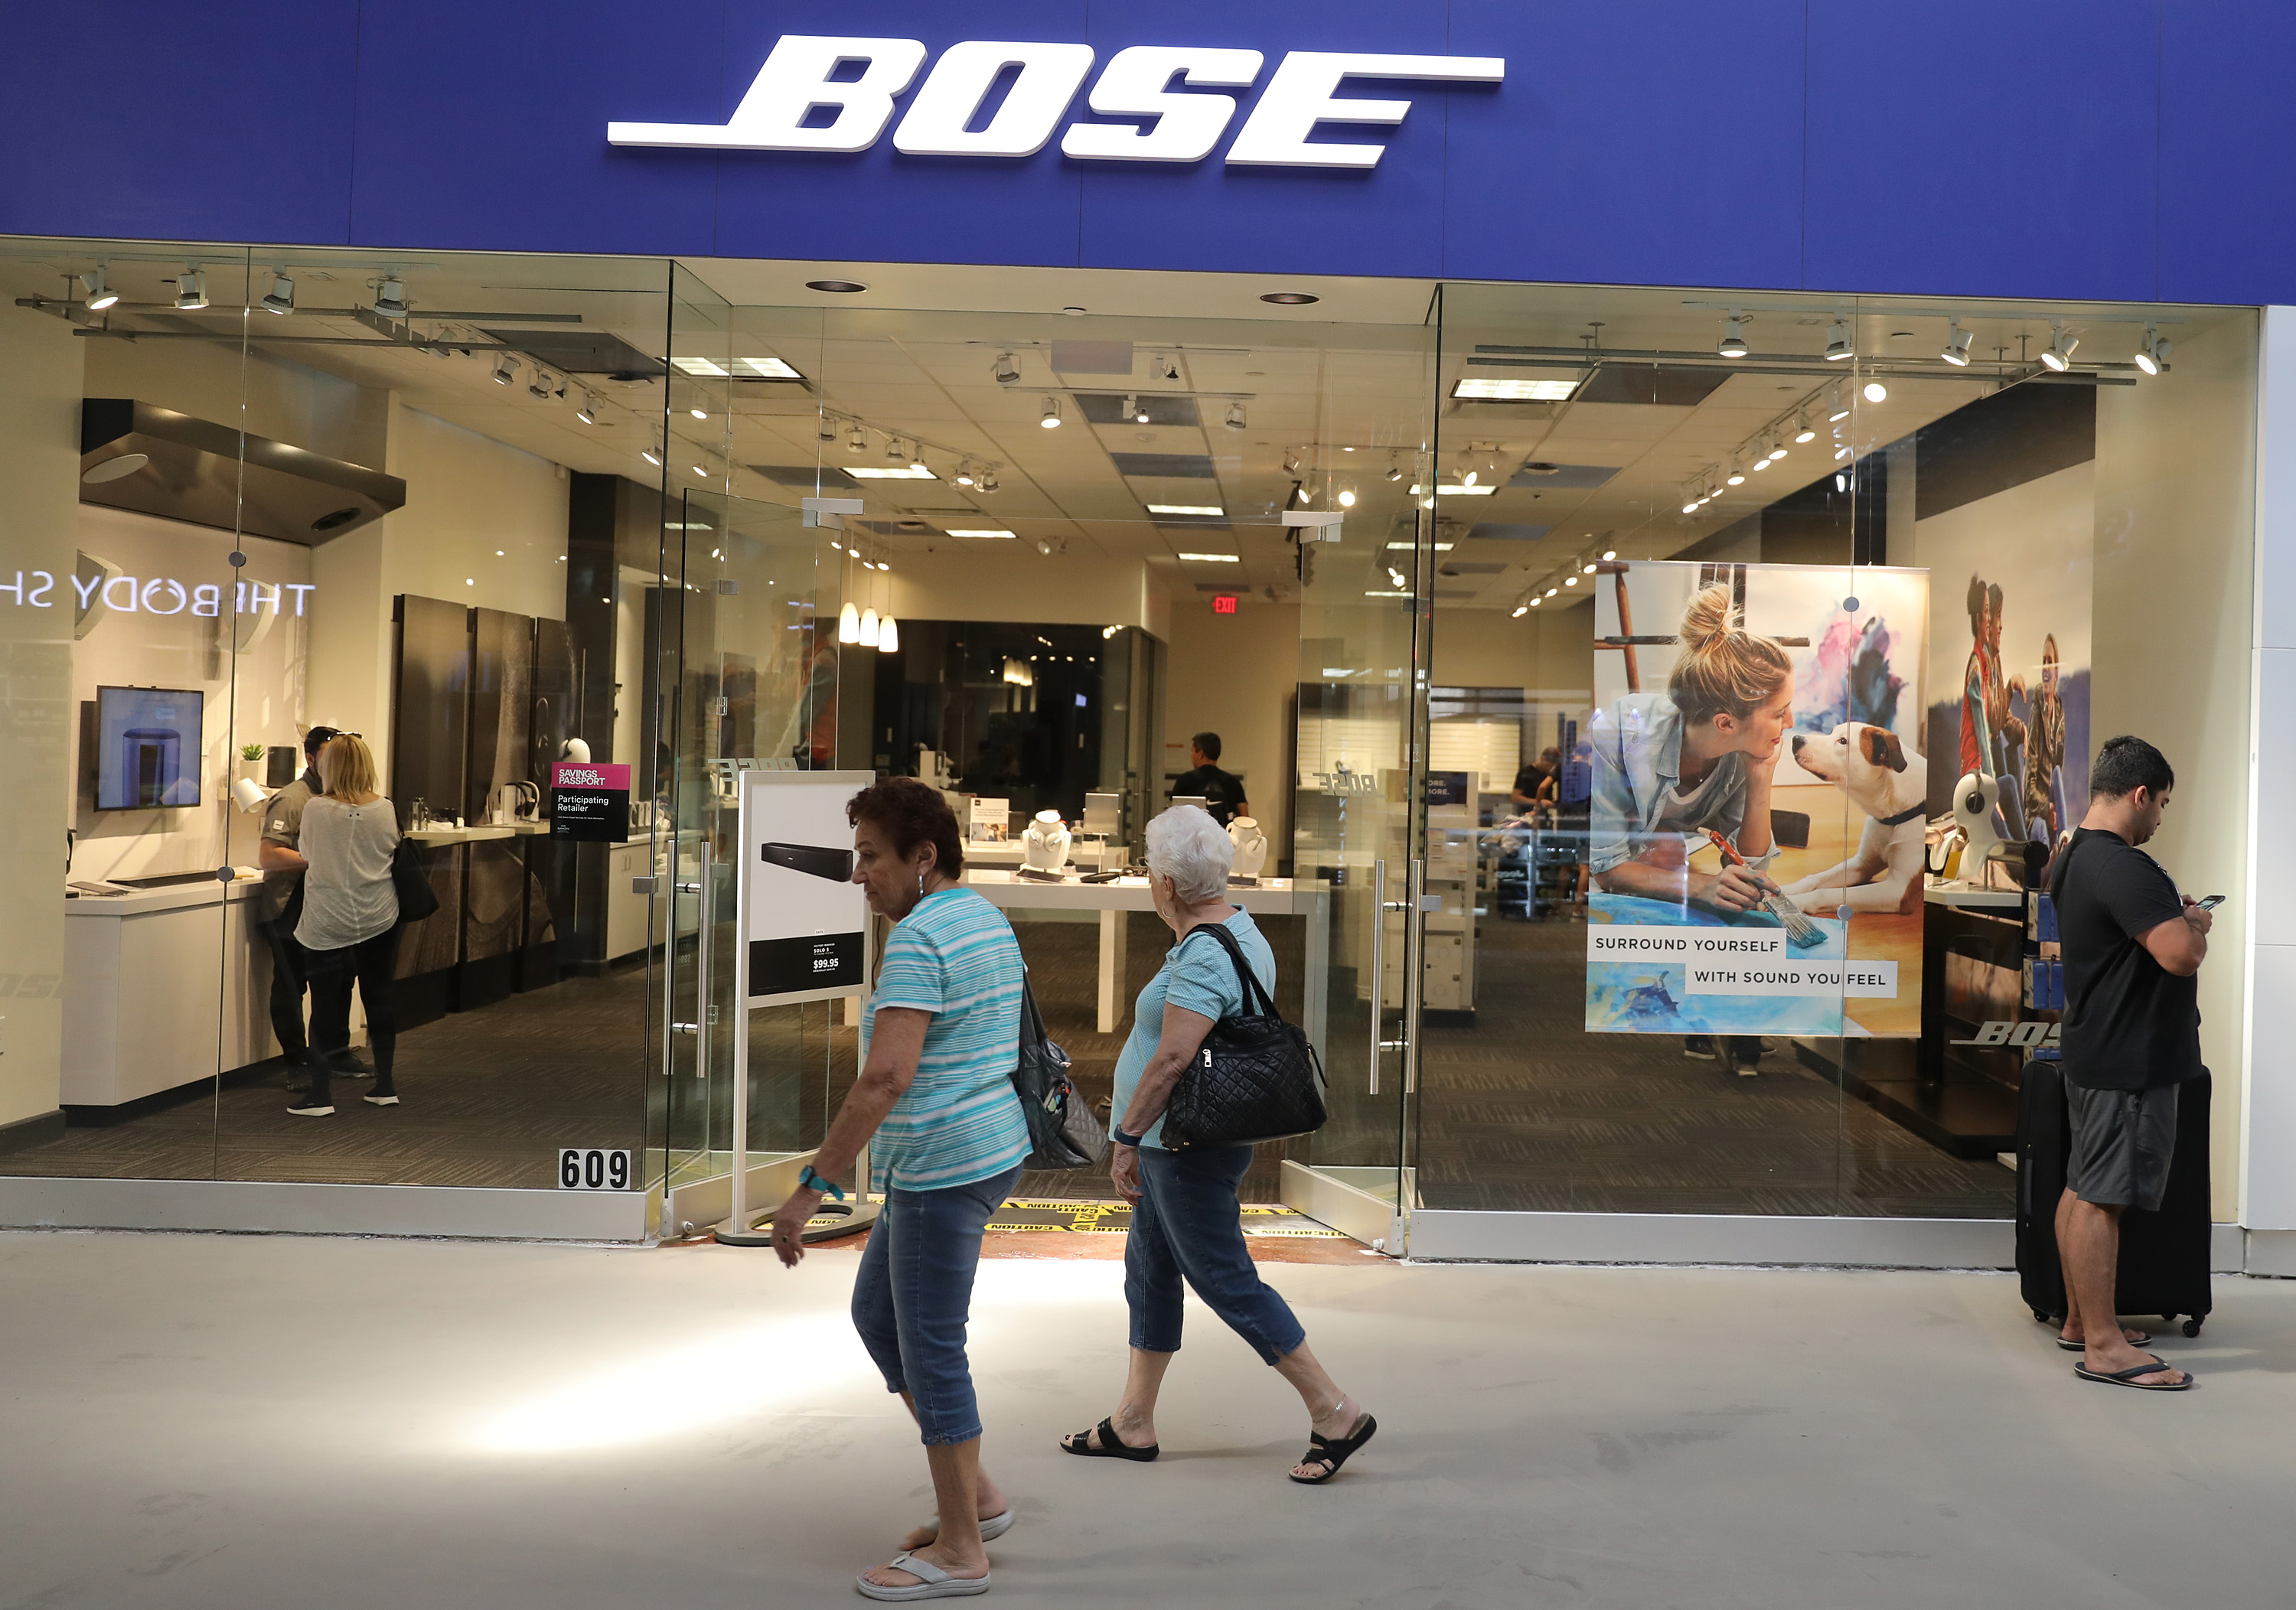 Bose to close all U.S. stores, affecting 1 in N.J.